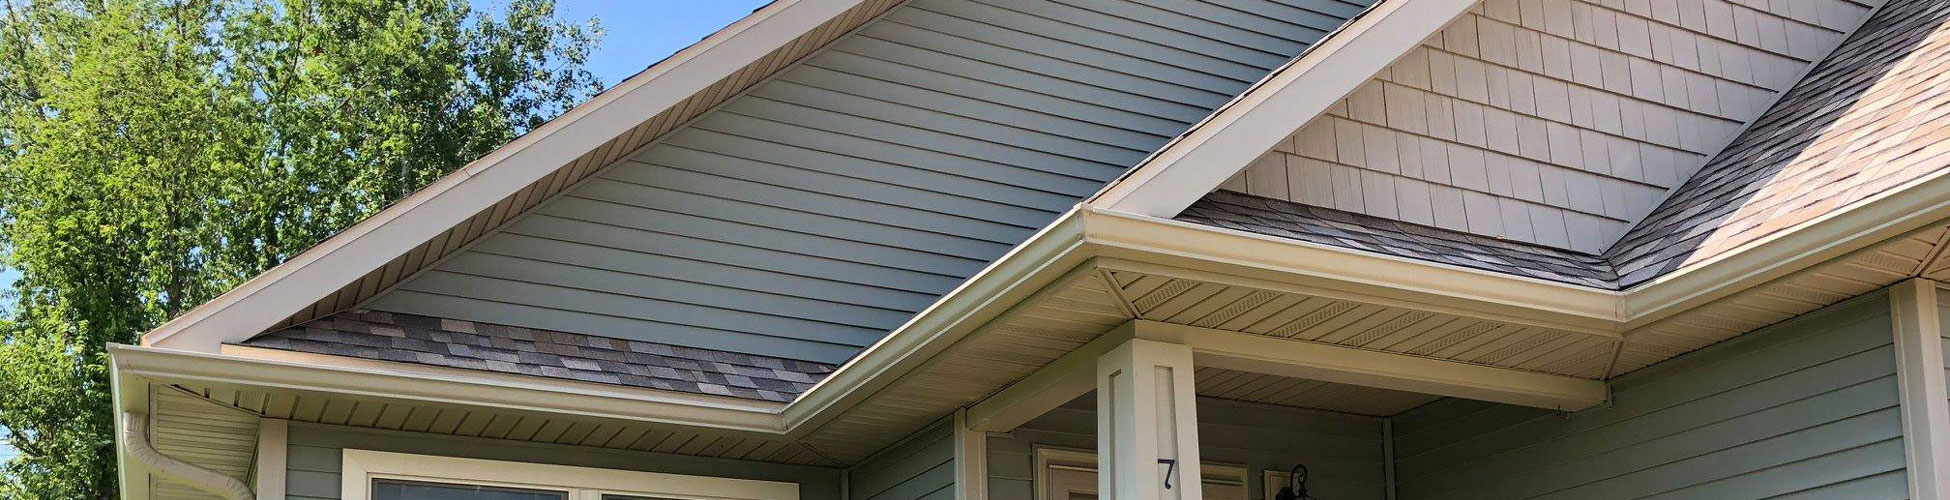 Pirkle Gutter Supply of Gainesville - Wholesale Gutter Supplies